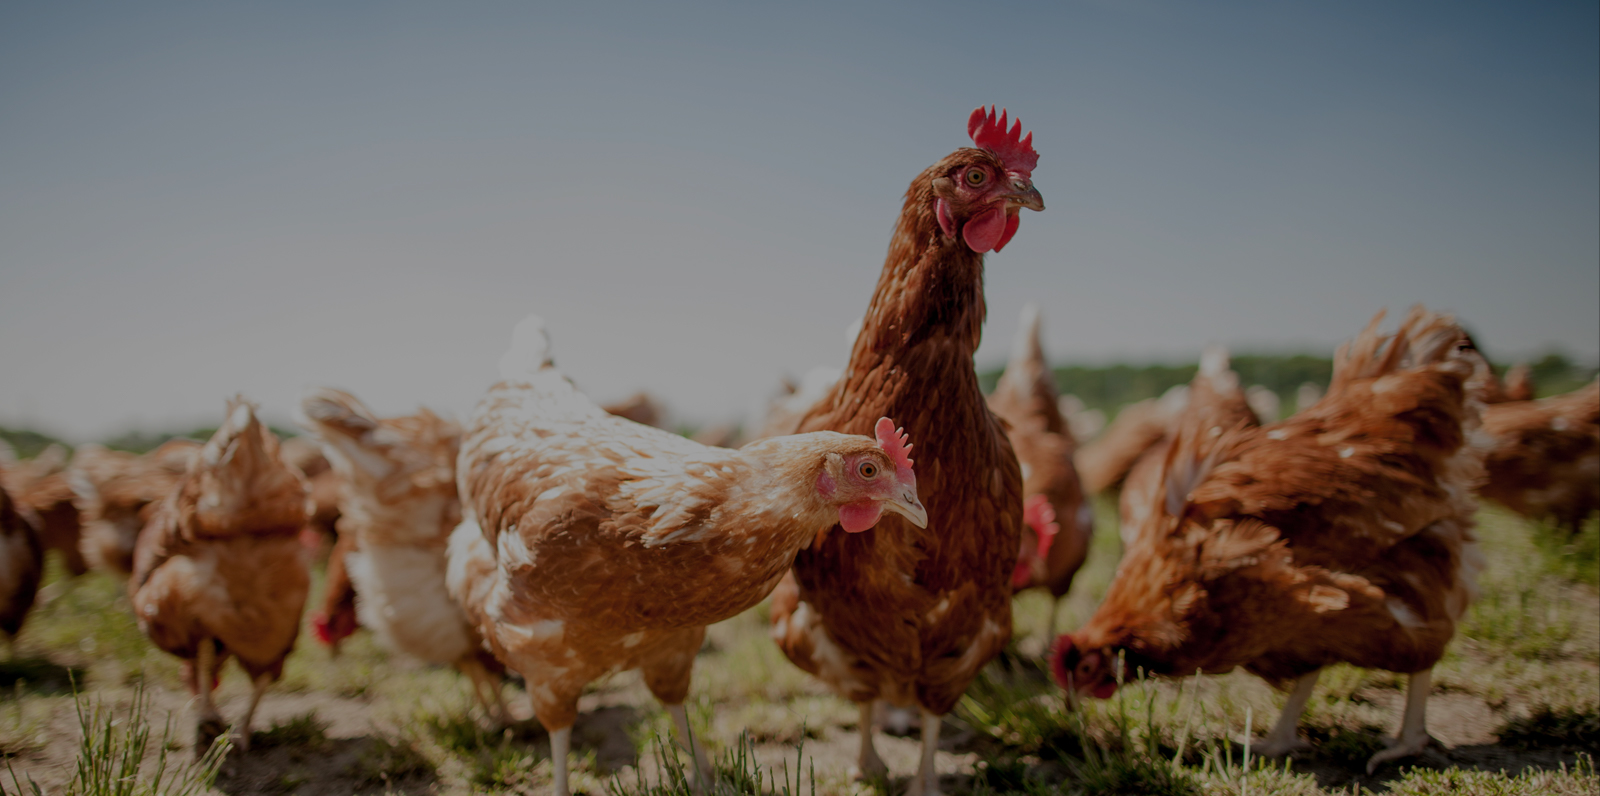 Rosehill Poultry